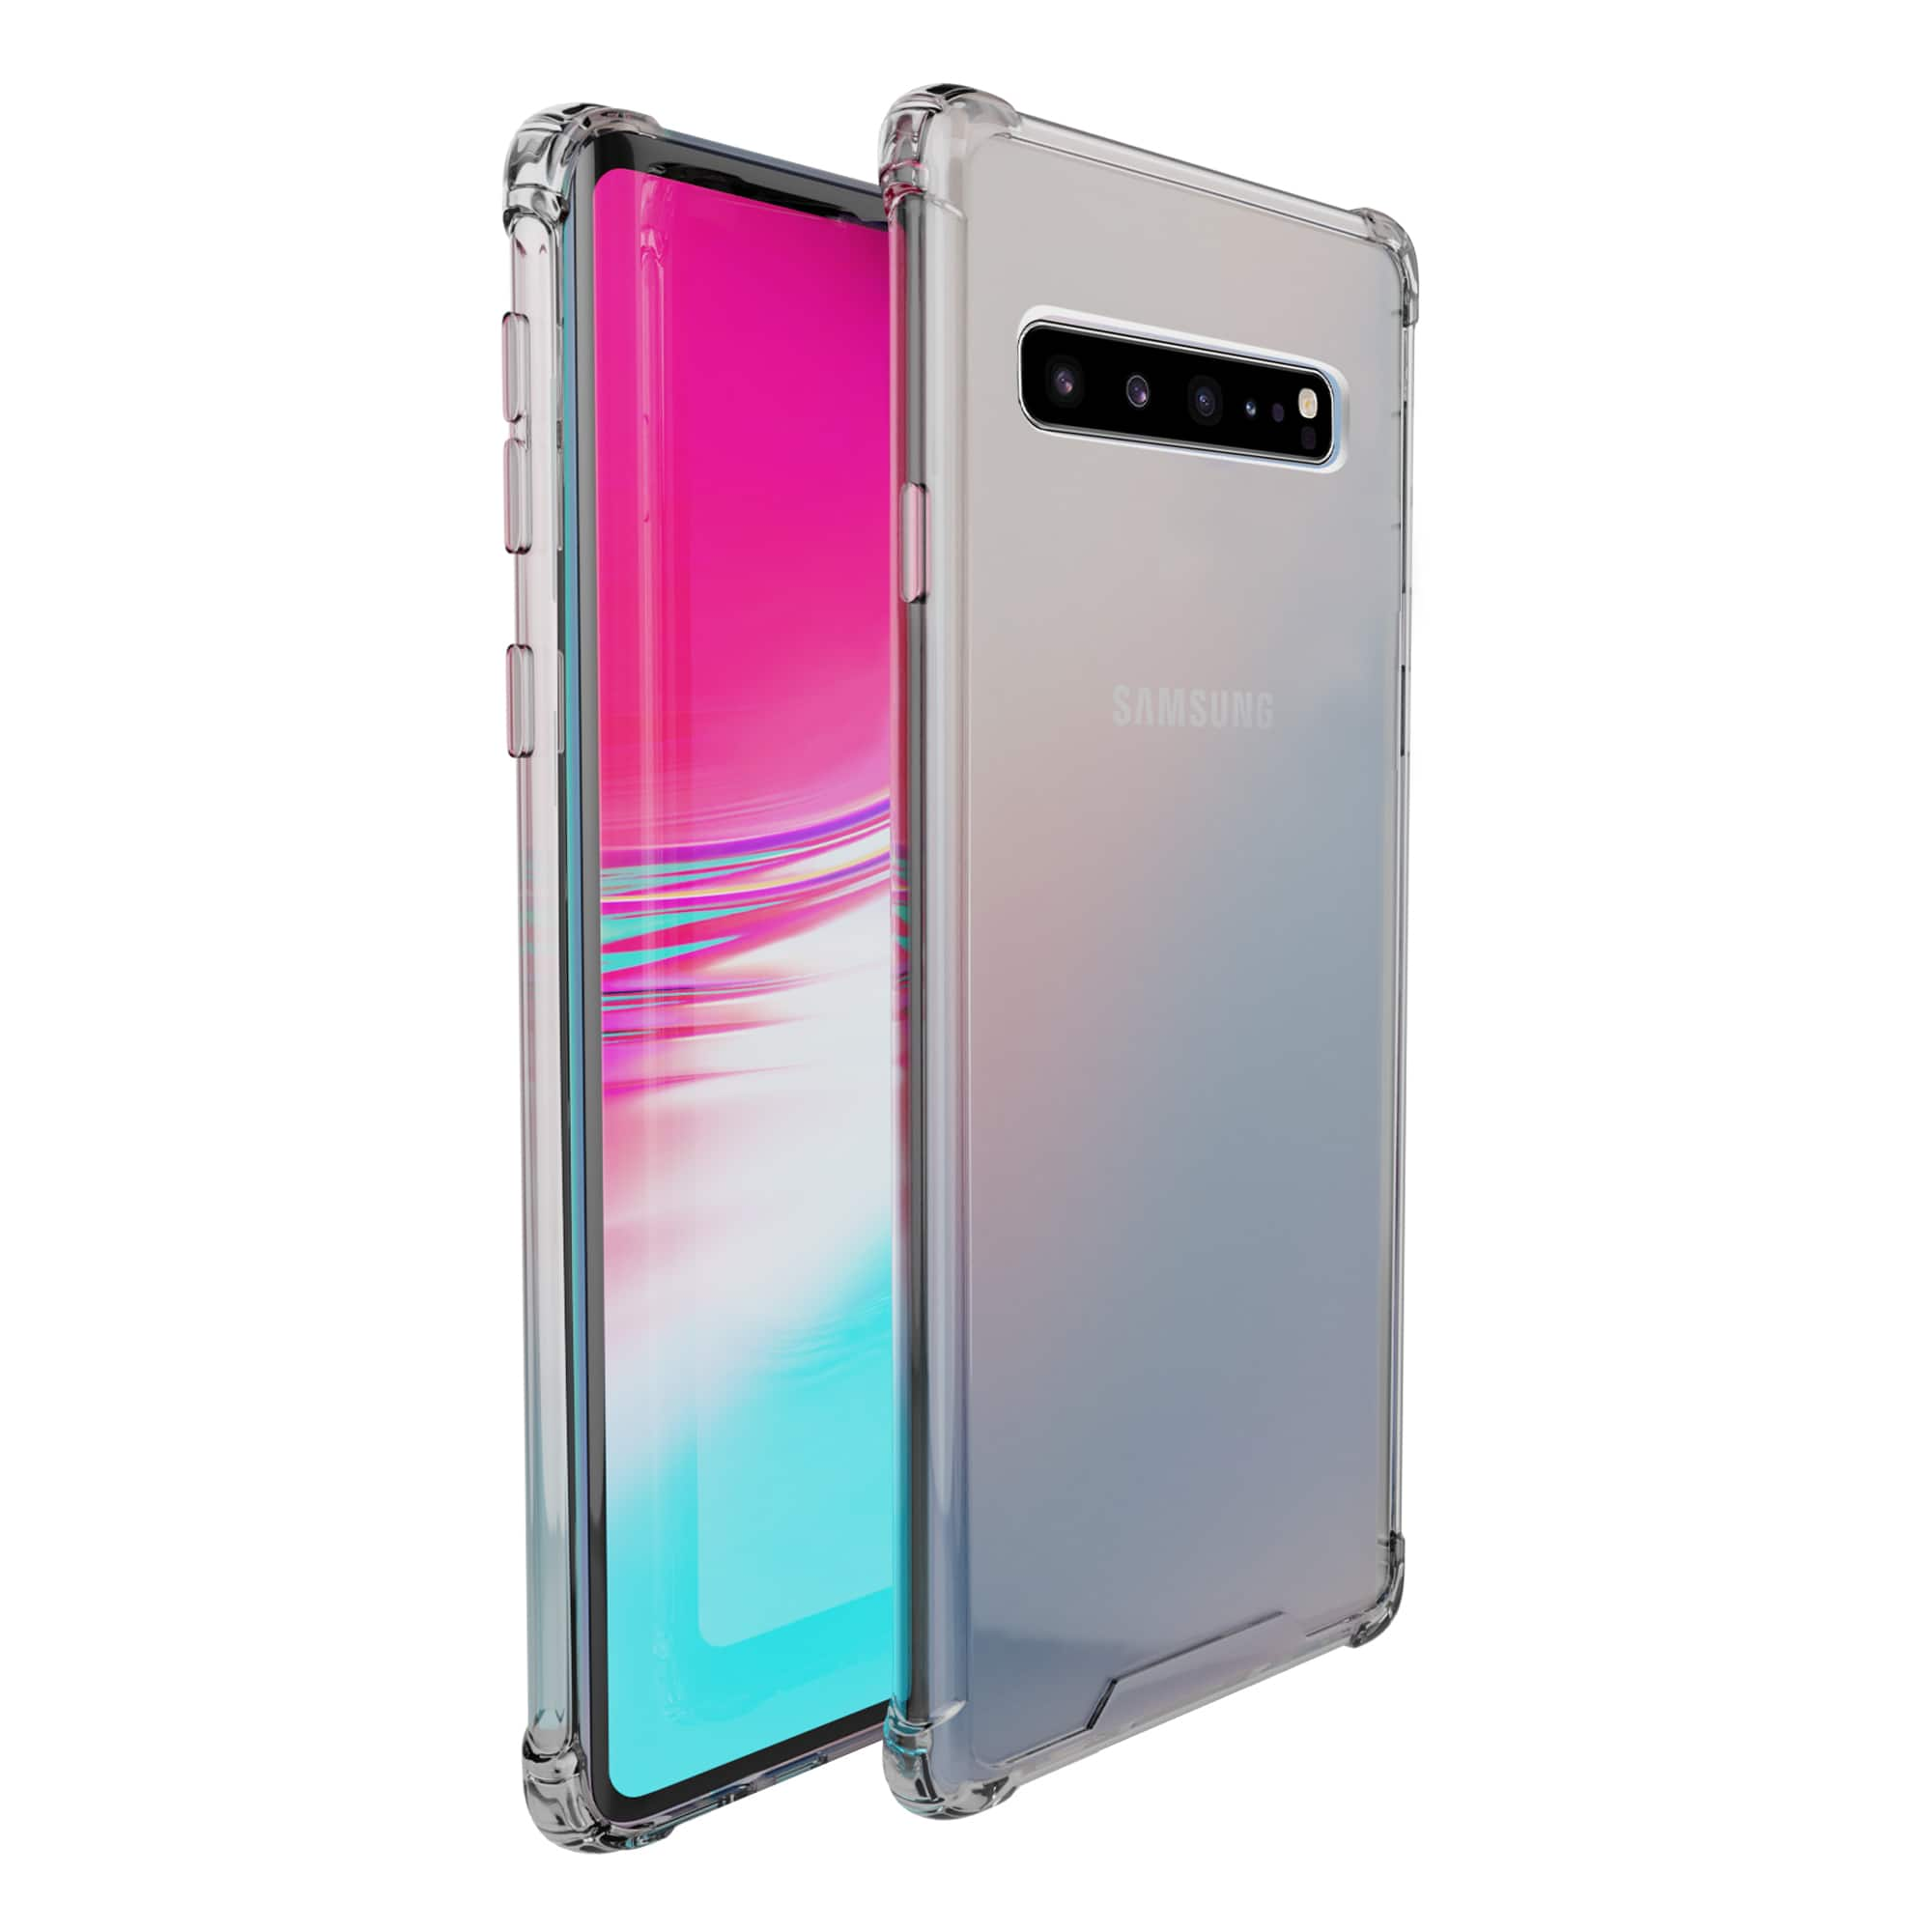 amCase Clear Bumper Cases for Samsung Galaxy S10 5G (and other) cases for $3.92 with Prime Shipping